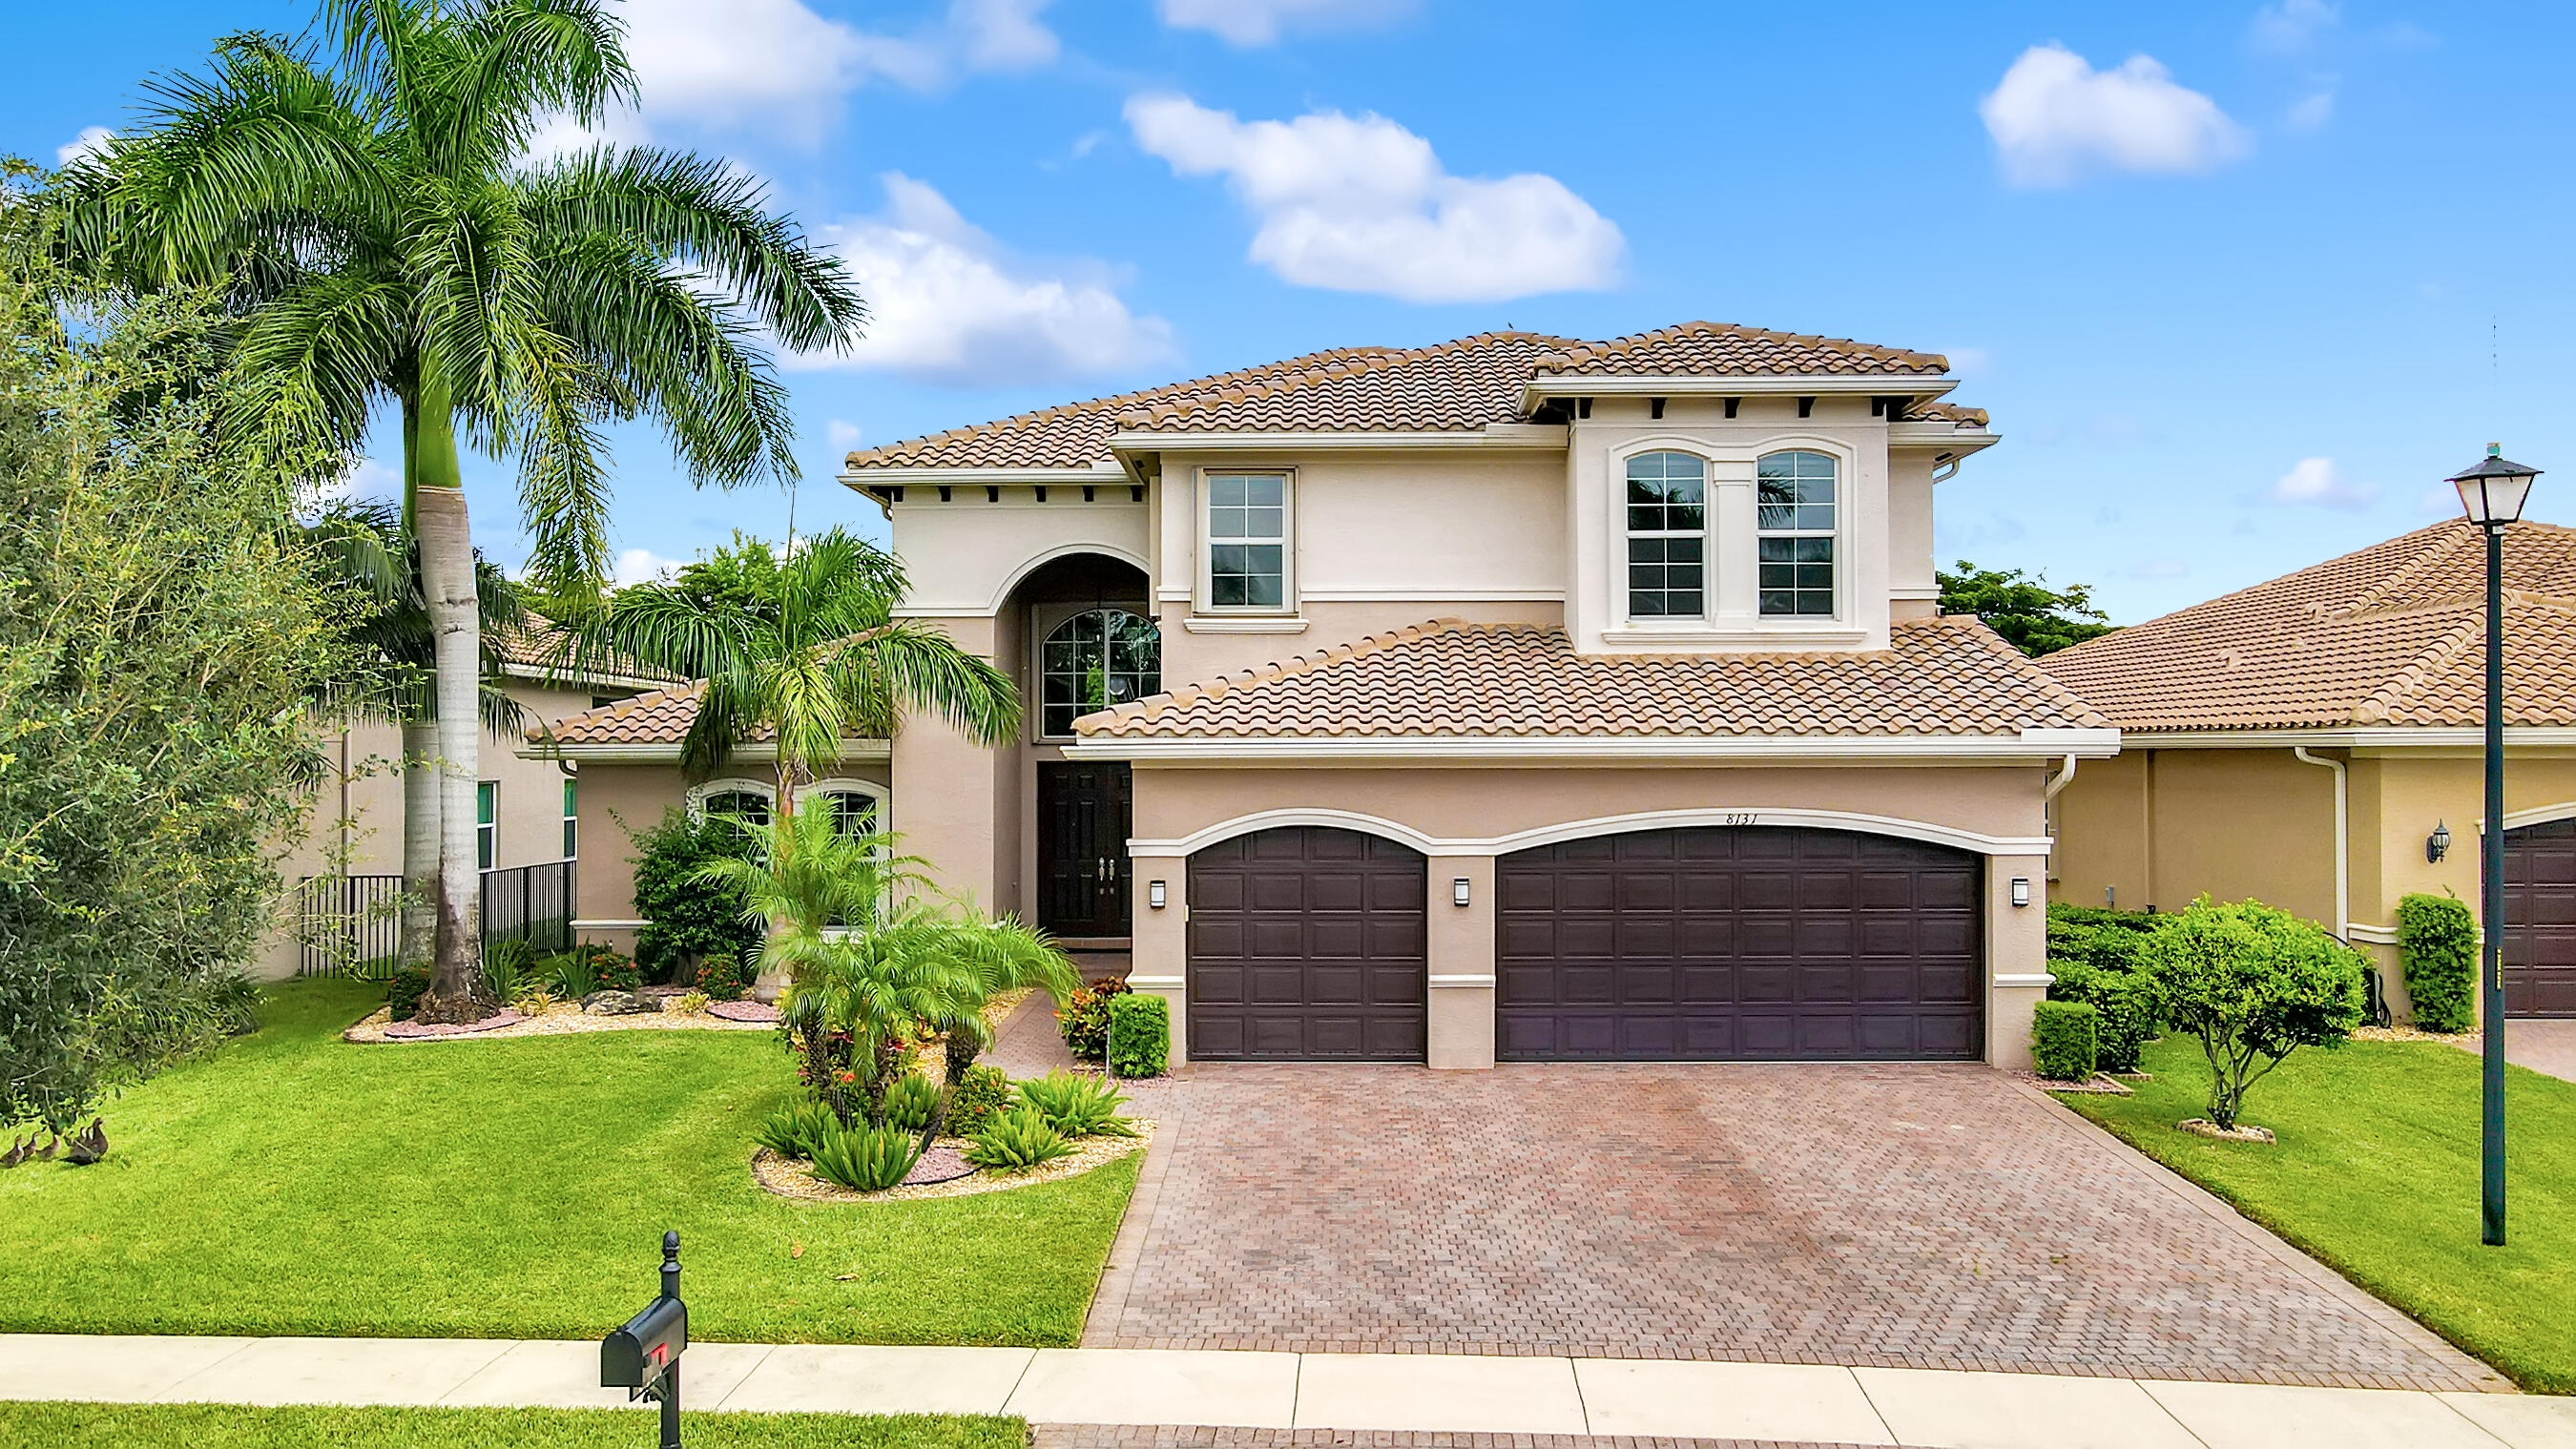 Home for sale in Canyon Trails / Trails At Canyon Boynton Beach Florida